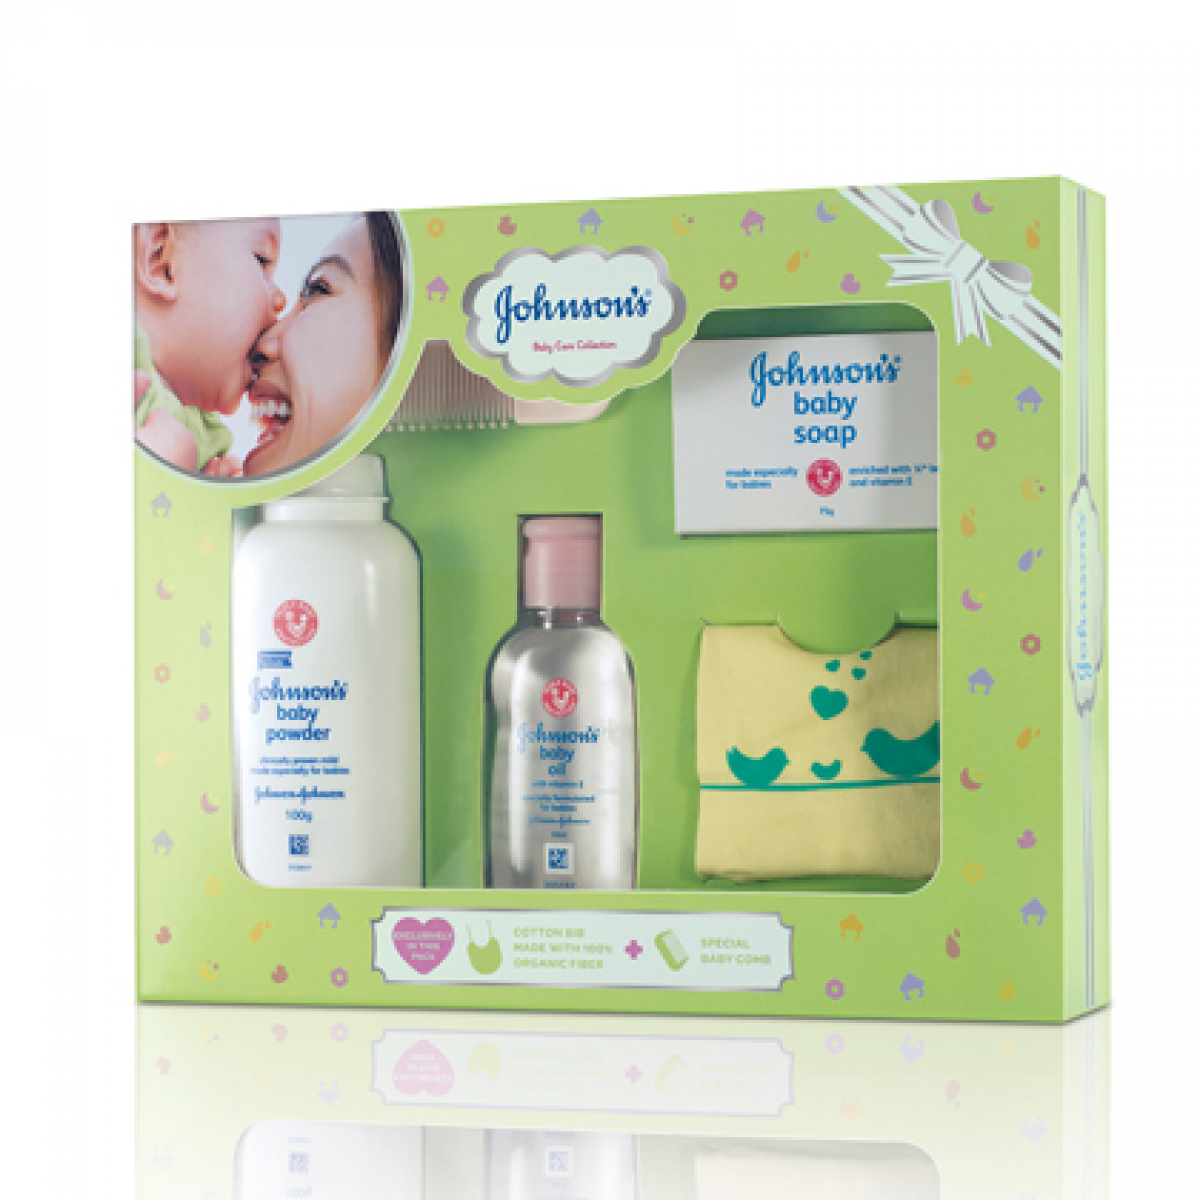 Online Shopping In Nepal Buy Store Johnsons Baby Blossoms Soap 100gr Care Collection With Organic Cotton Bib And Comb 5 Gift Items Green Box